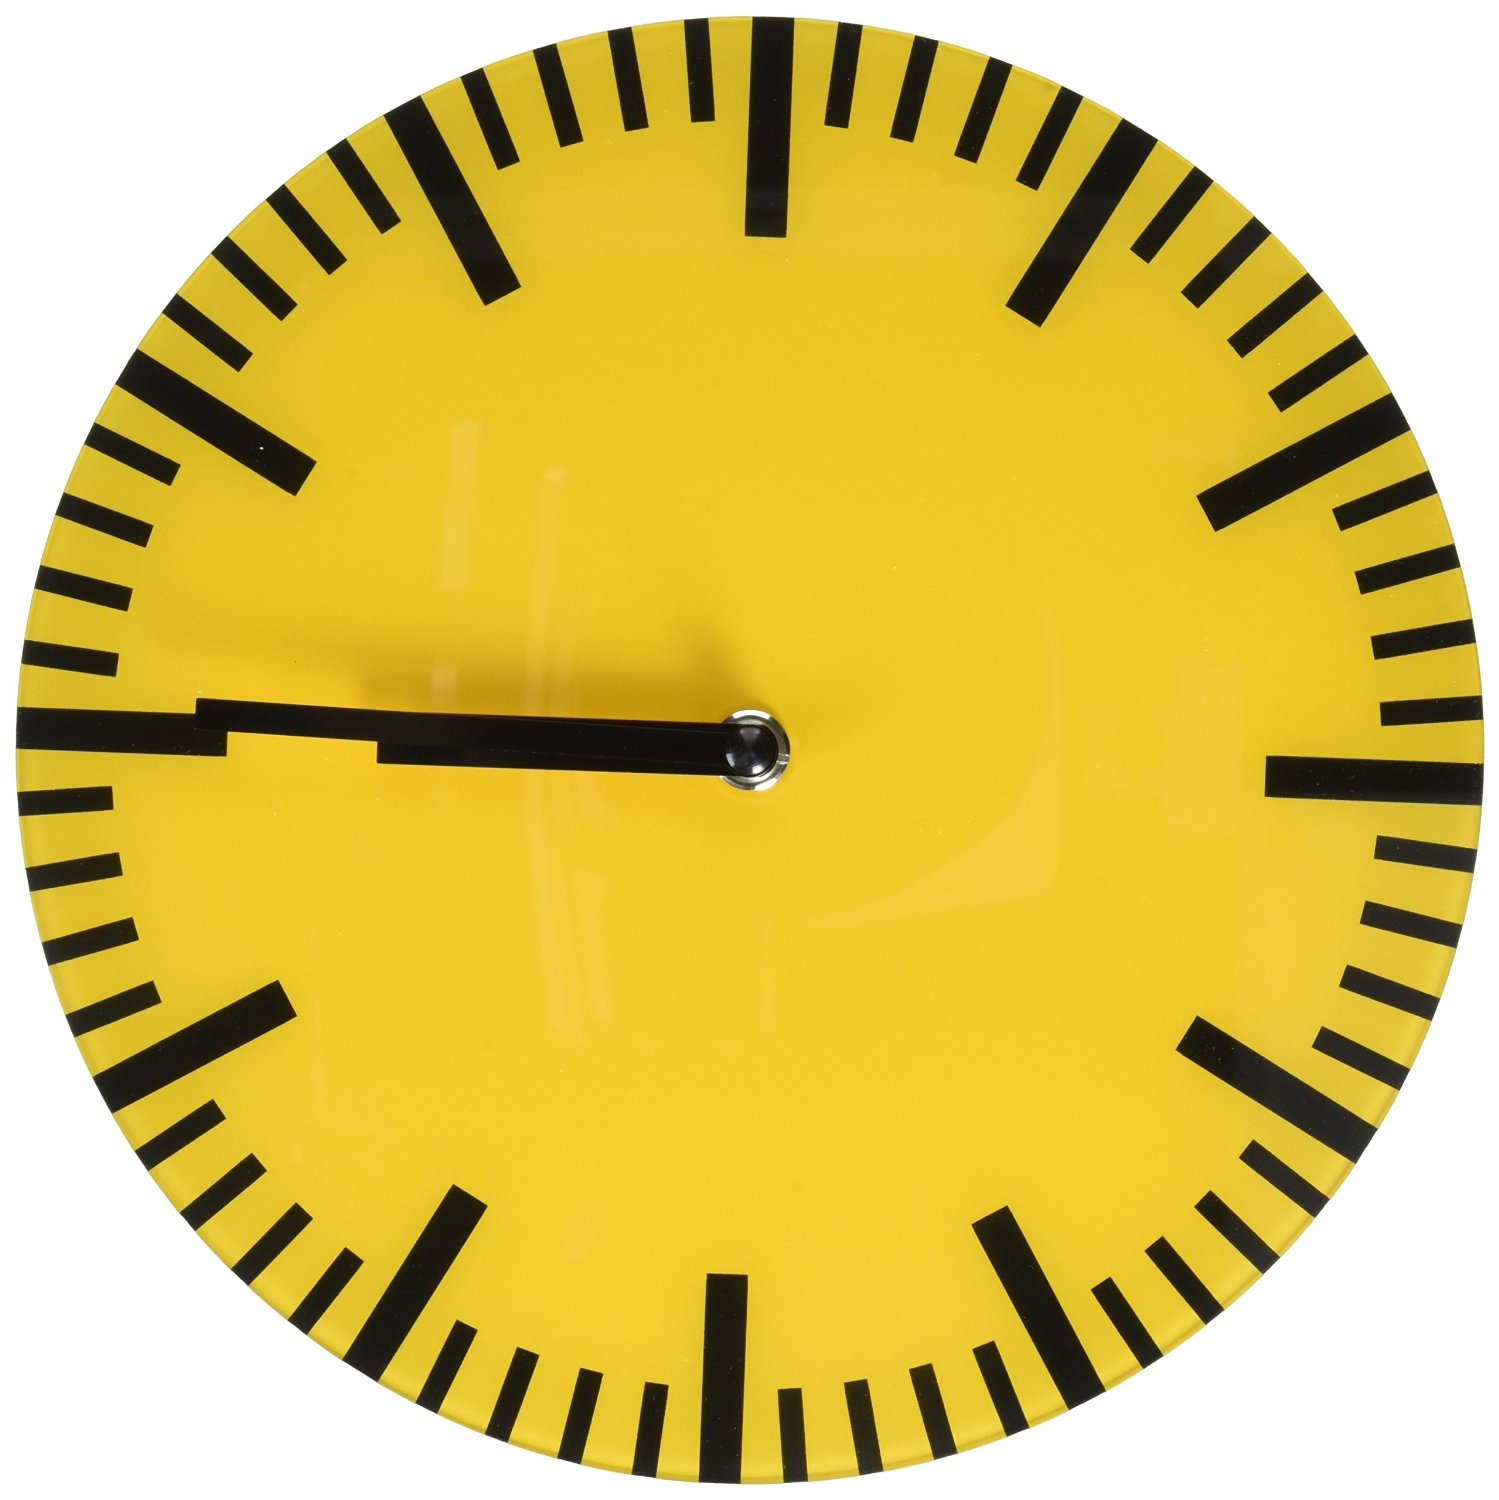 Cheap Ticking Wall Clock, find Ticking Wall Clock deals on line at ...